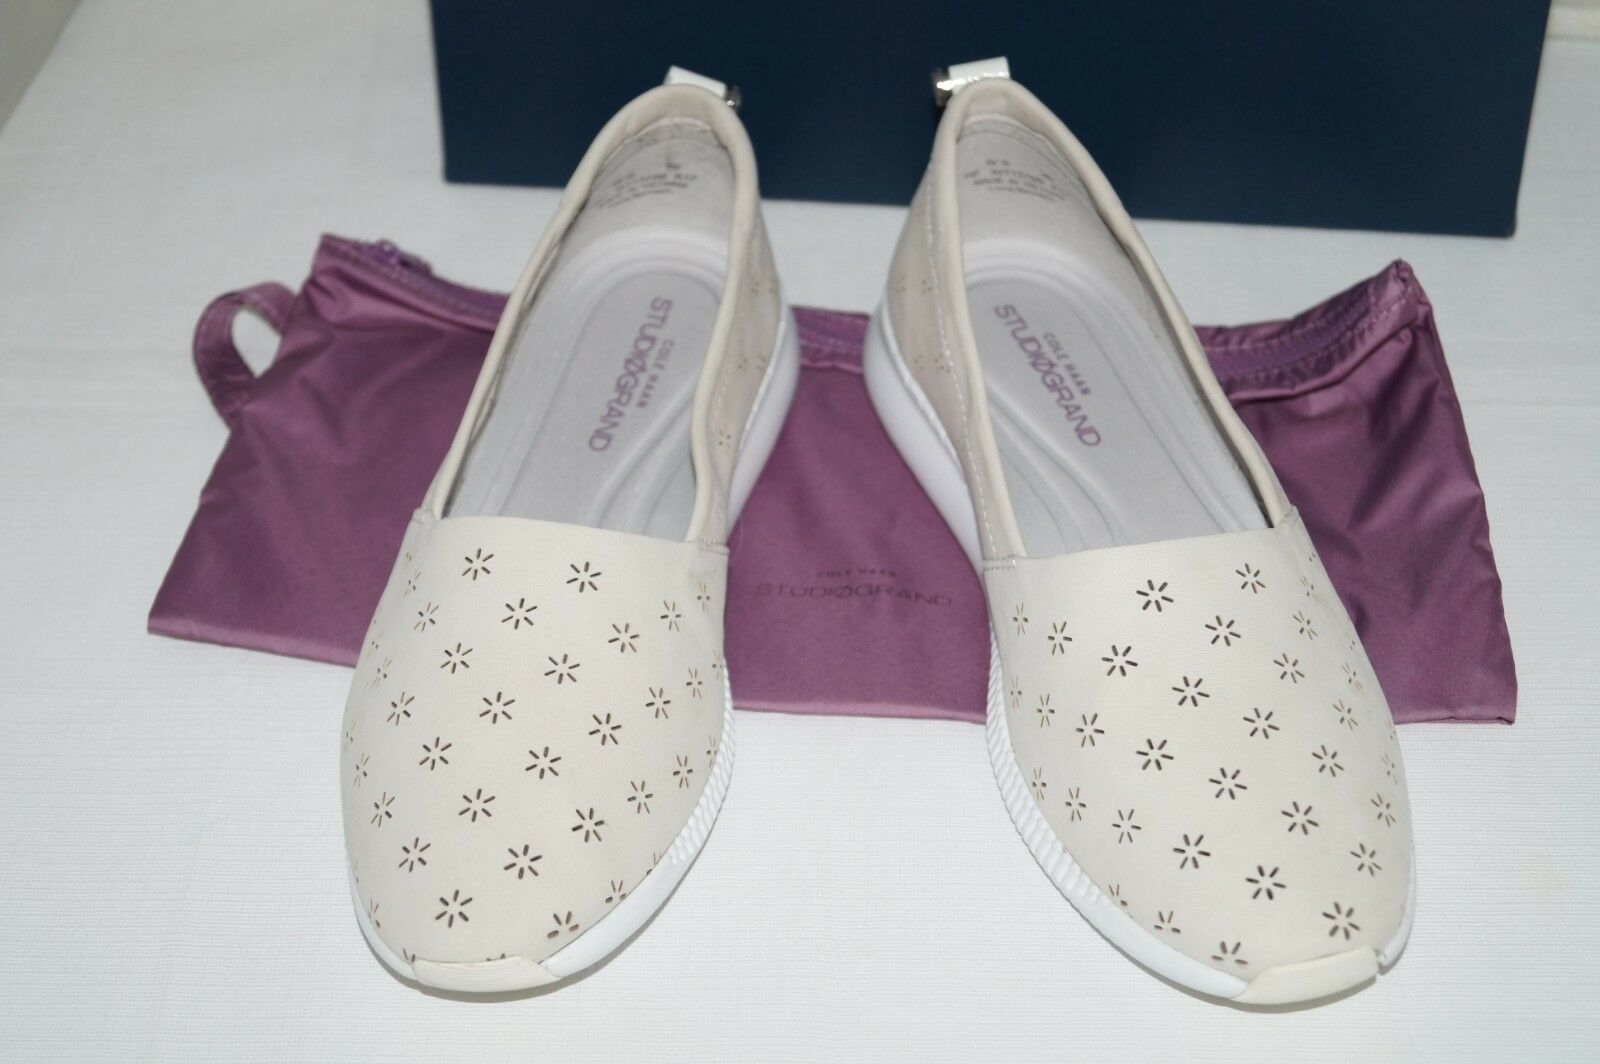 NEW IN BOX Authentique  198 Cole Haan studiogrand Perforé Nude Chaussures Taille 9 m